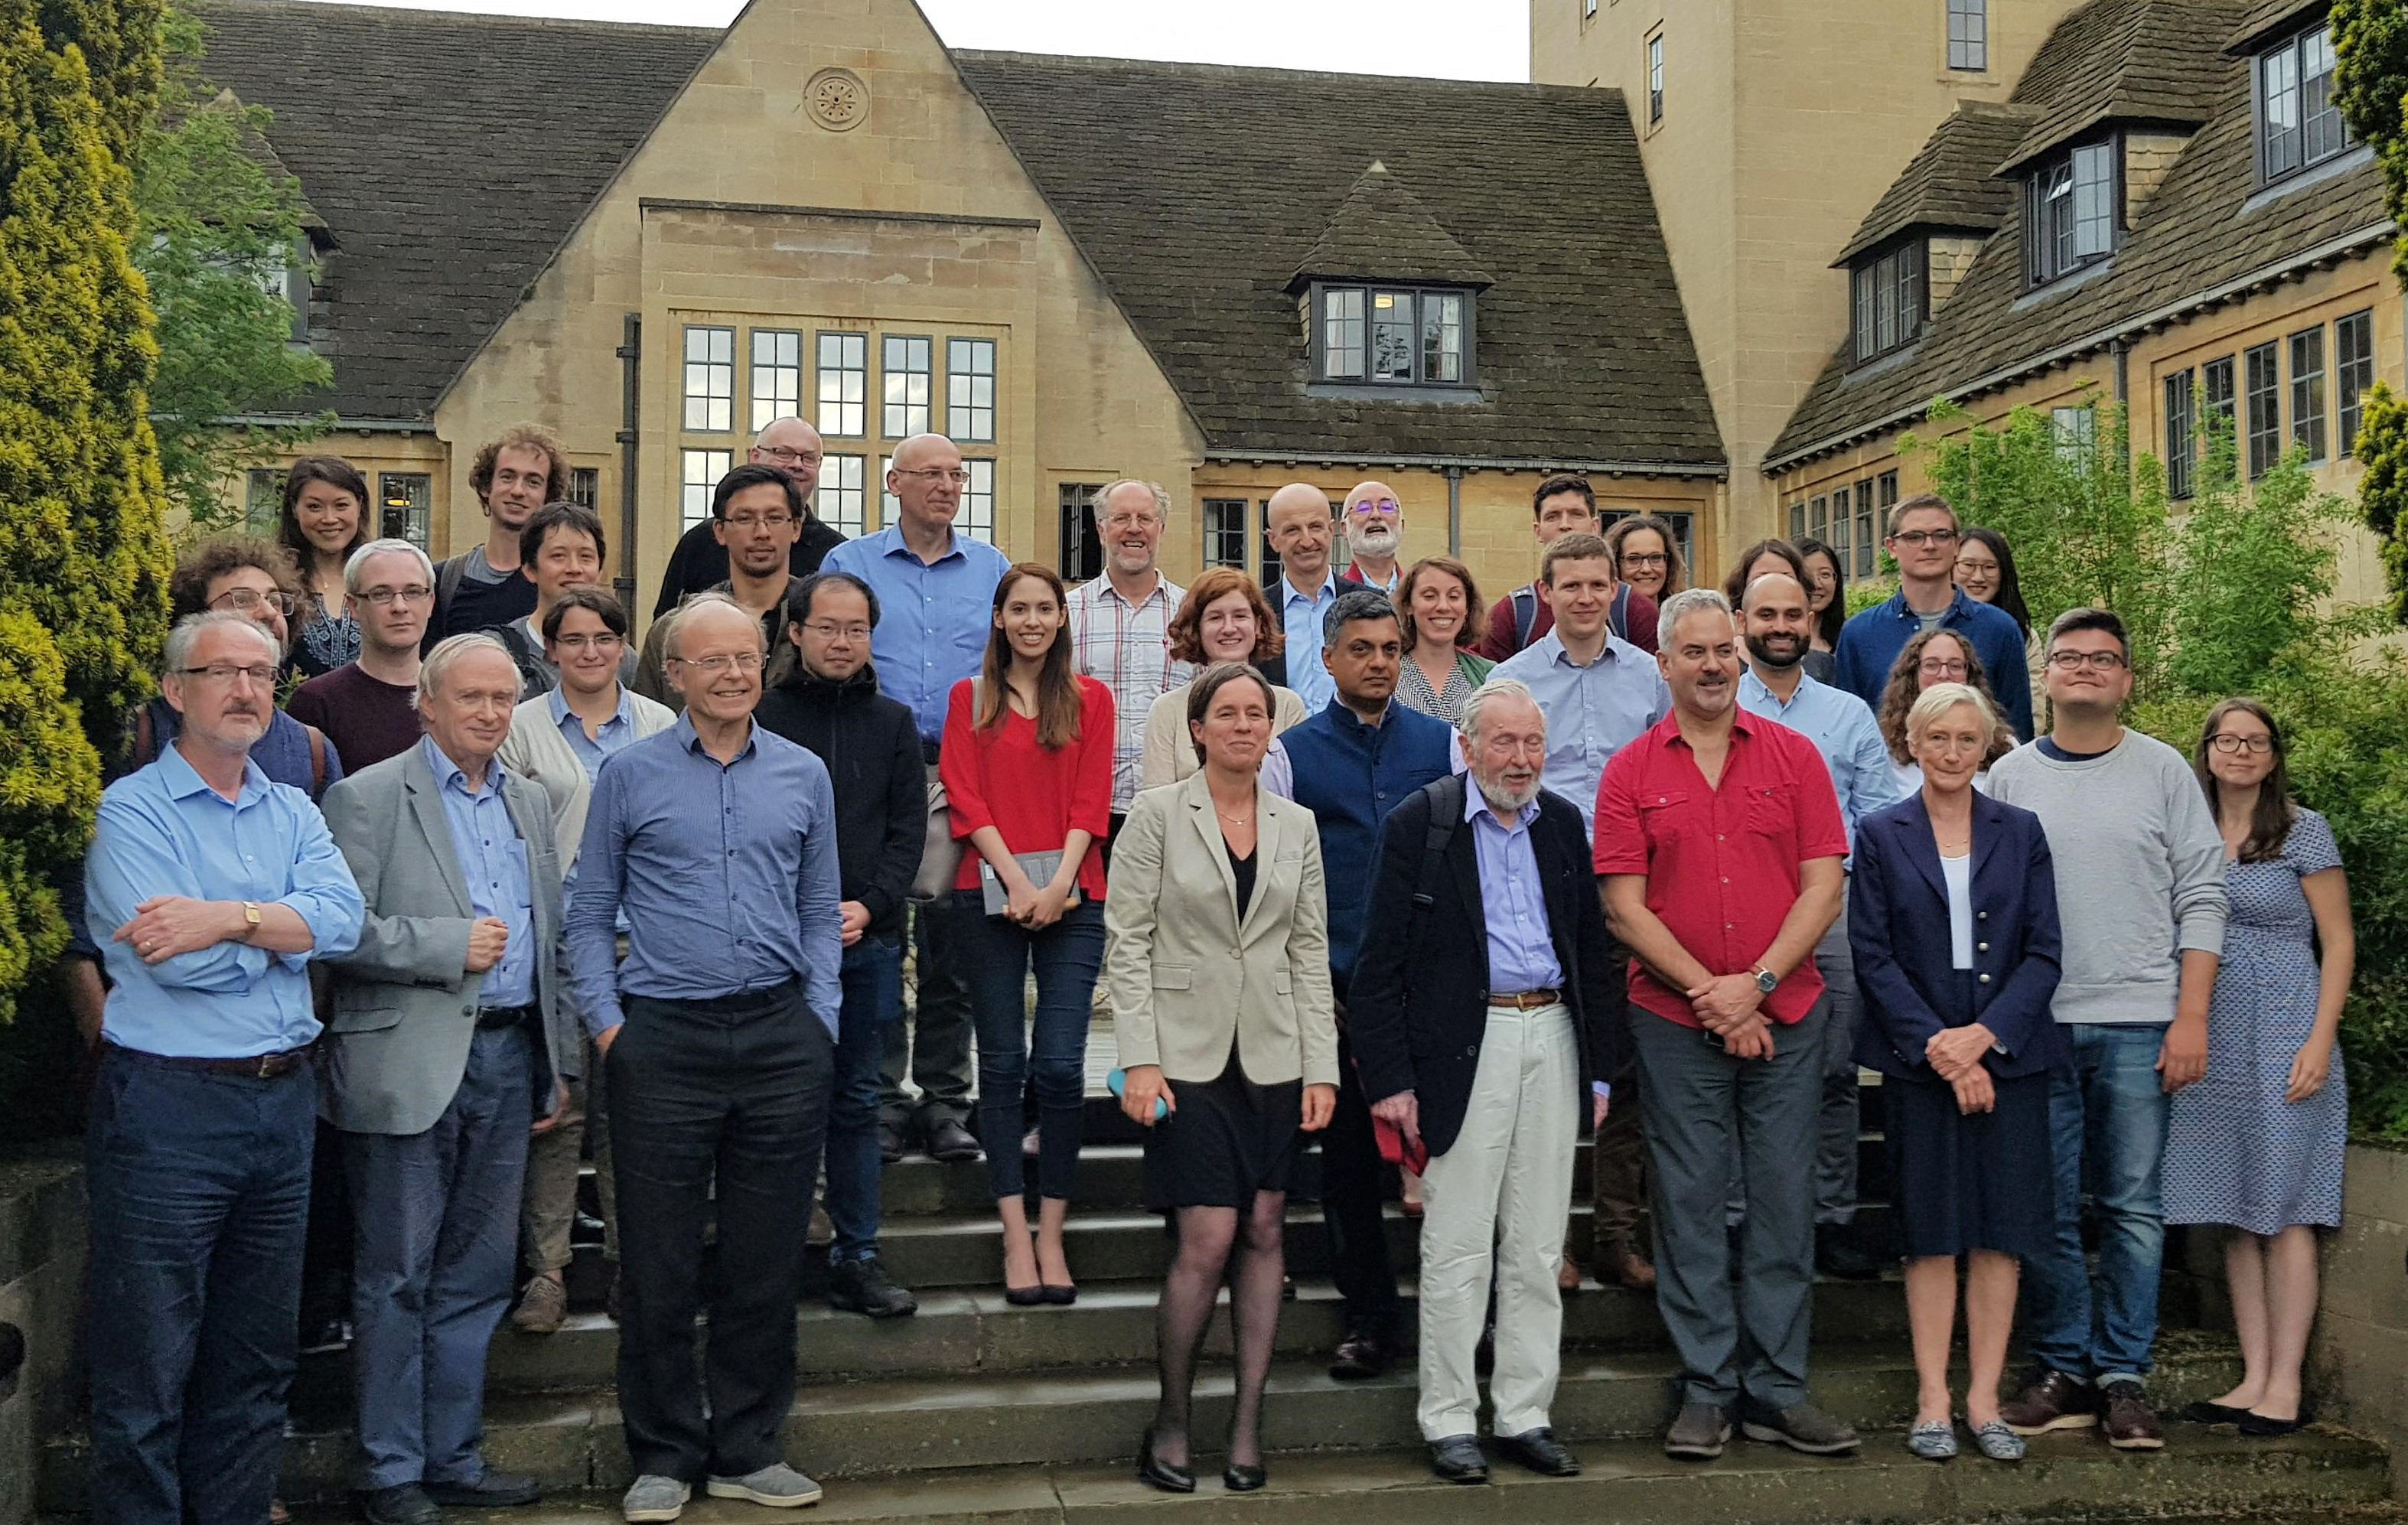 Attendees at the symposium at Nuffield in May 2018 on Cécile Laborde's new book, Liberalism's Religion